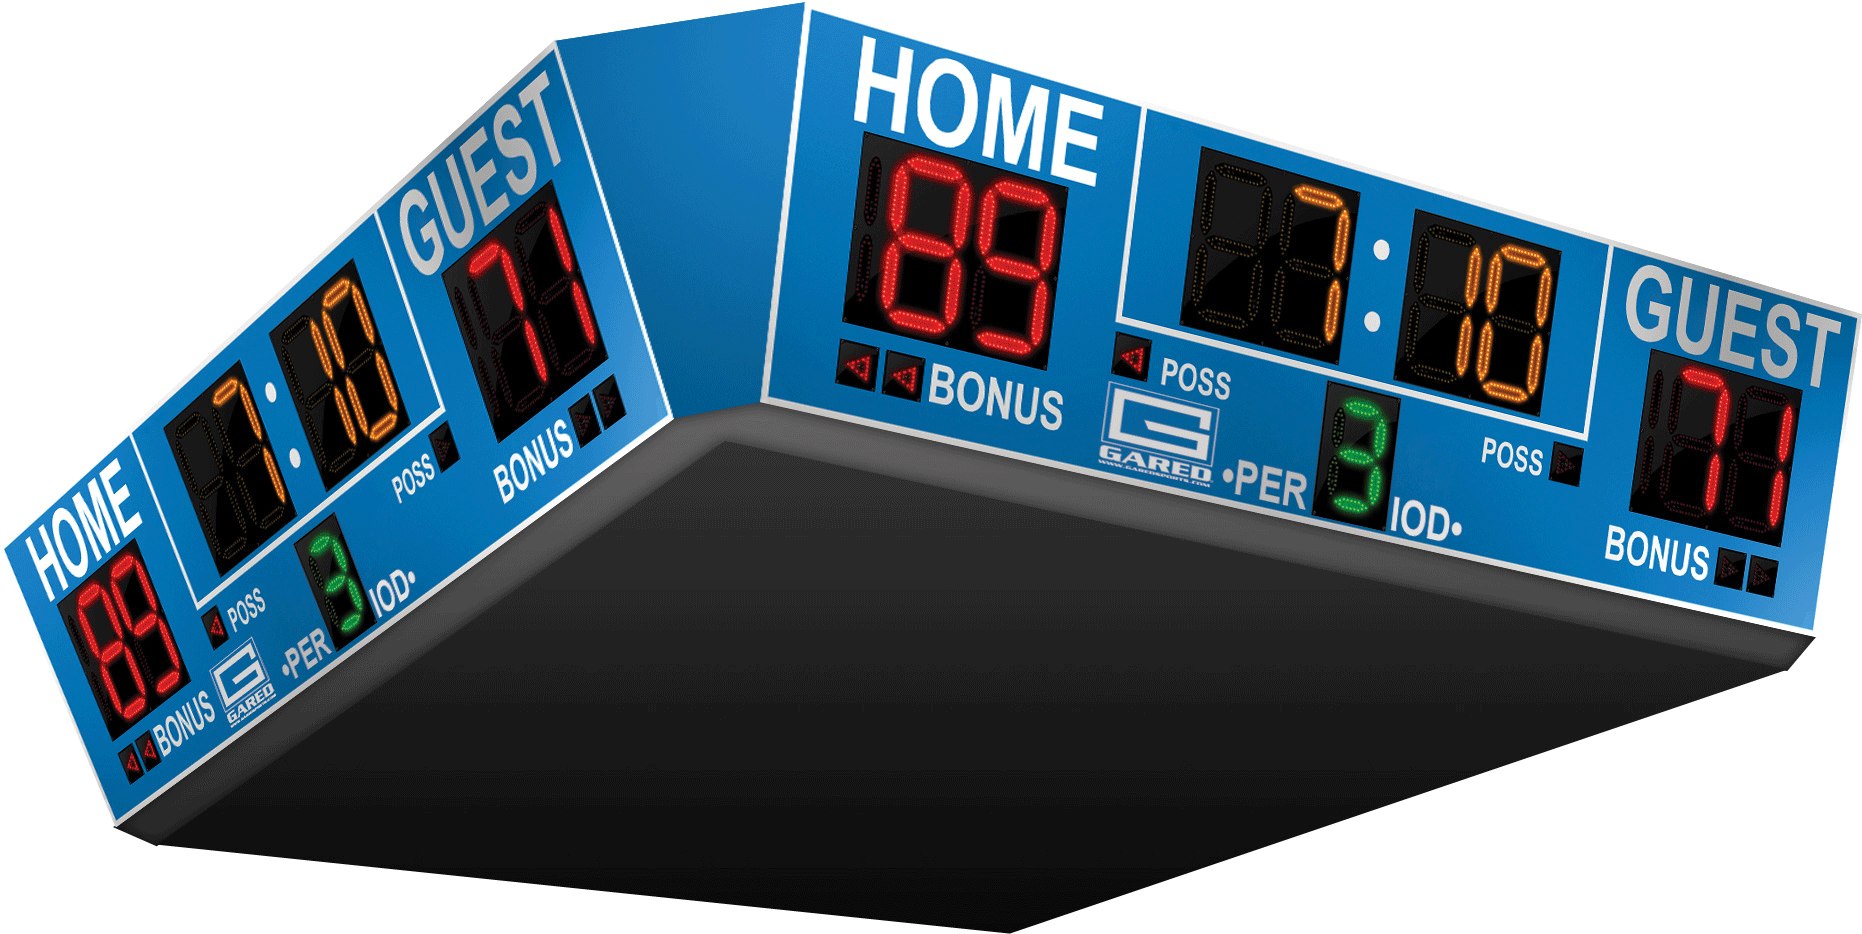 basketball scoreboard sided scoreboards arena four sports alphatec gs systems equipment performance